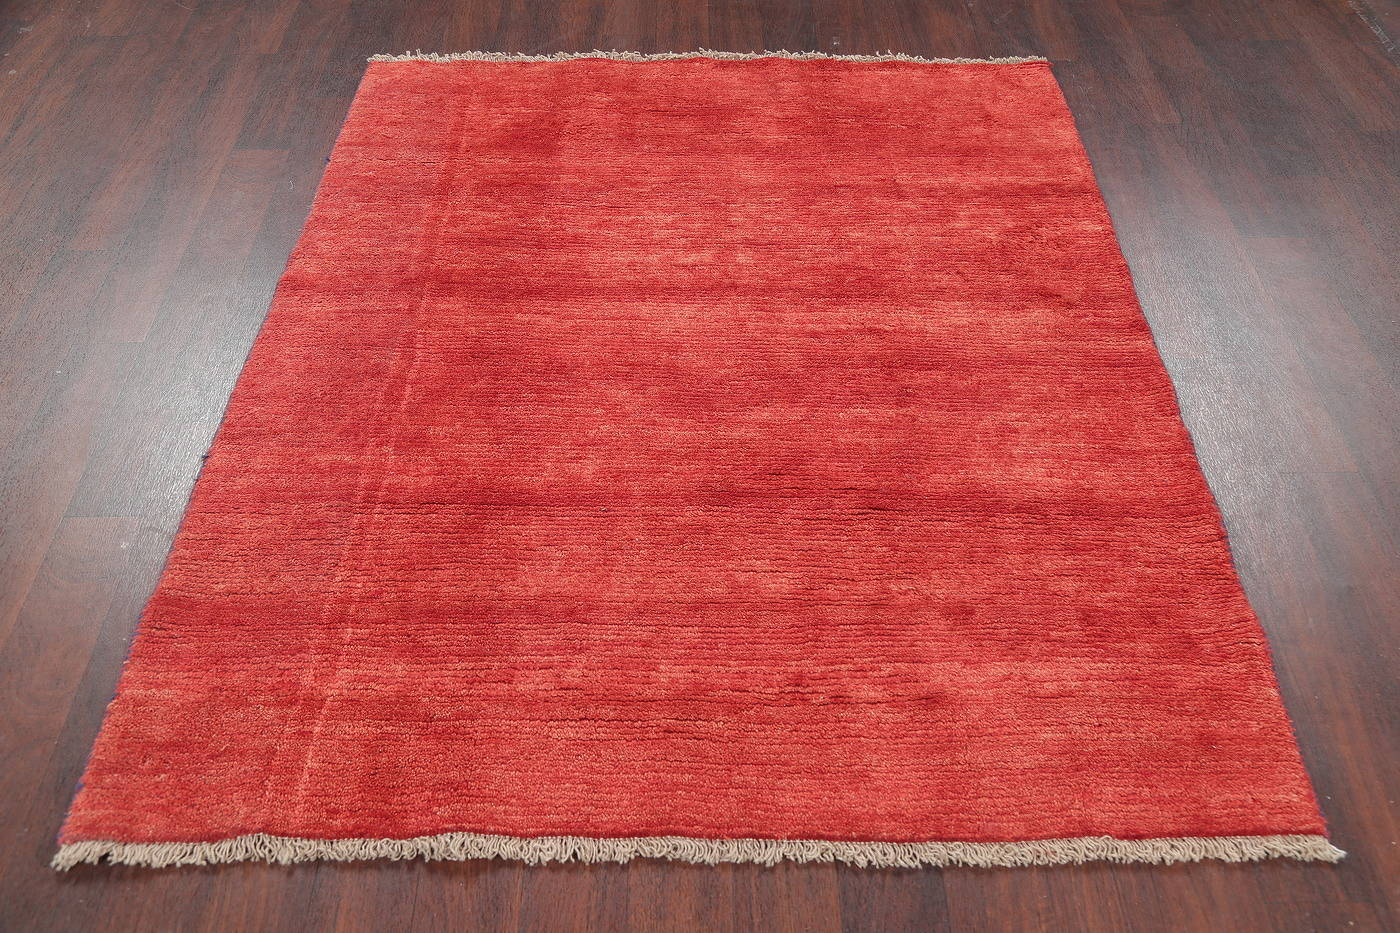 Hand-Knotted Red Solid Gabbeh Shiraz Persian Wool Rug 5x6